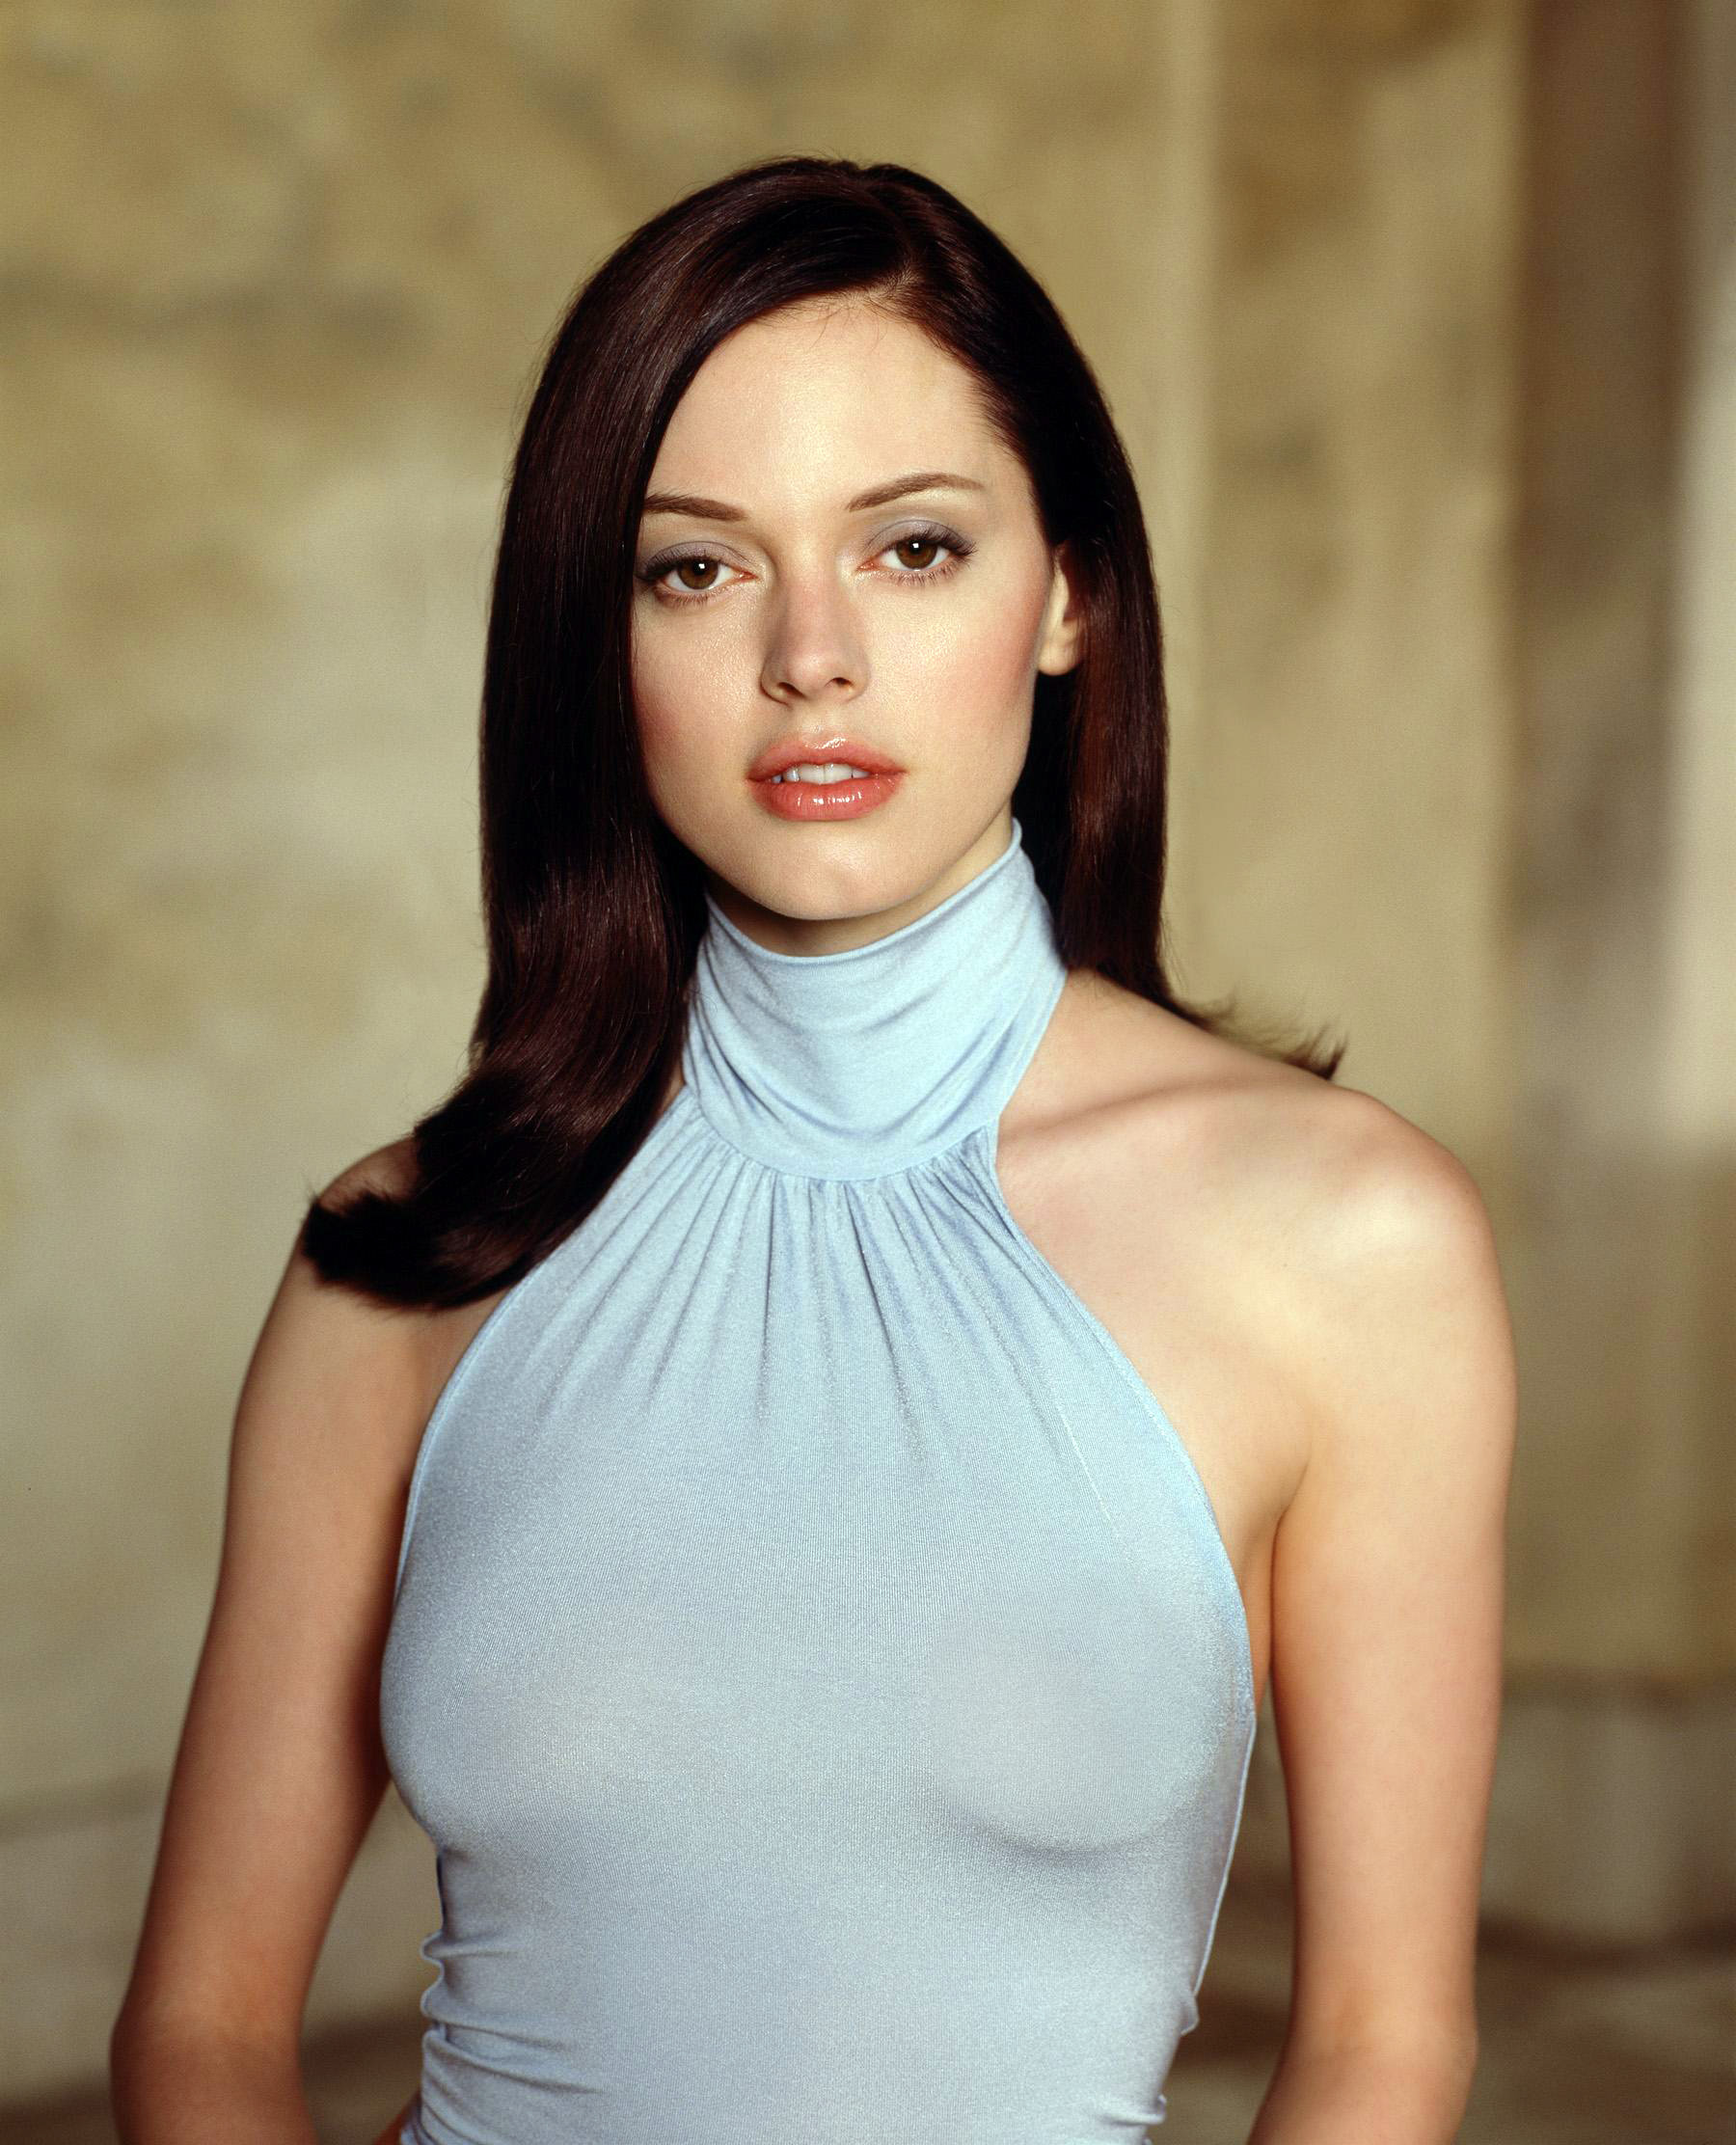 Sexy pictures of rose mcgowan